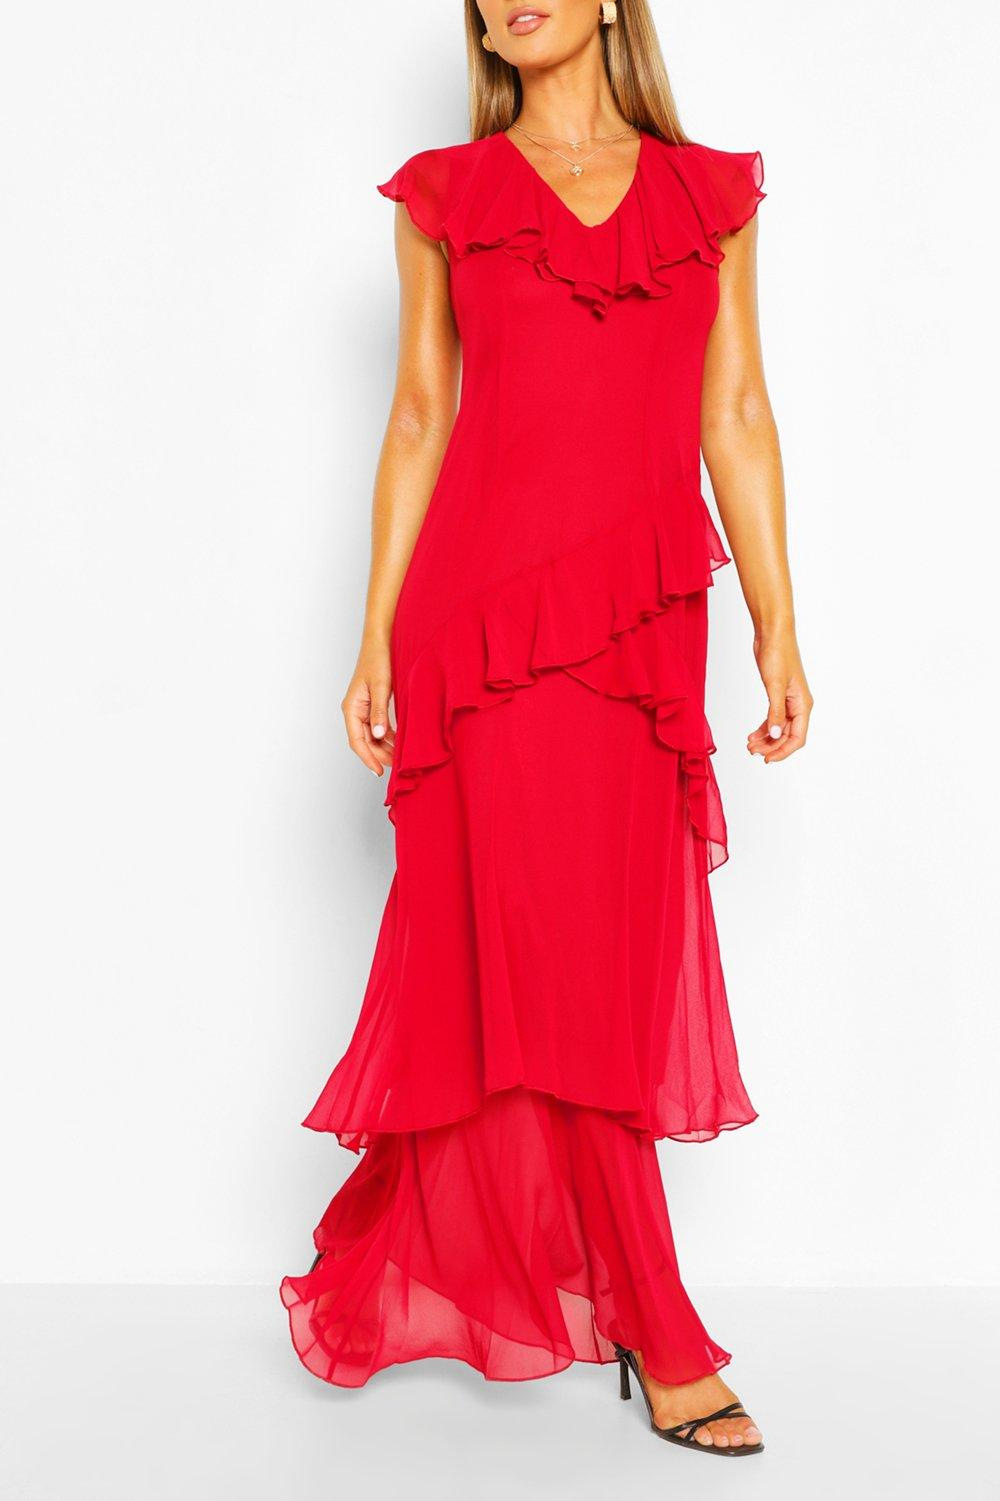 Vintage Prom Dresses, Homecoming Dress Womens Plunge Front Ruffle Maxi Dress - Red - 14 $18.00 AT vintagedancer.com